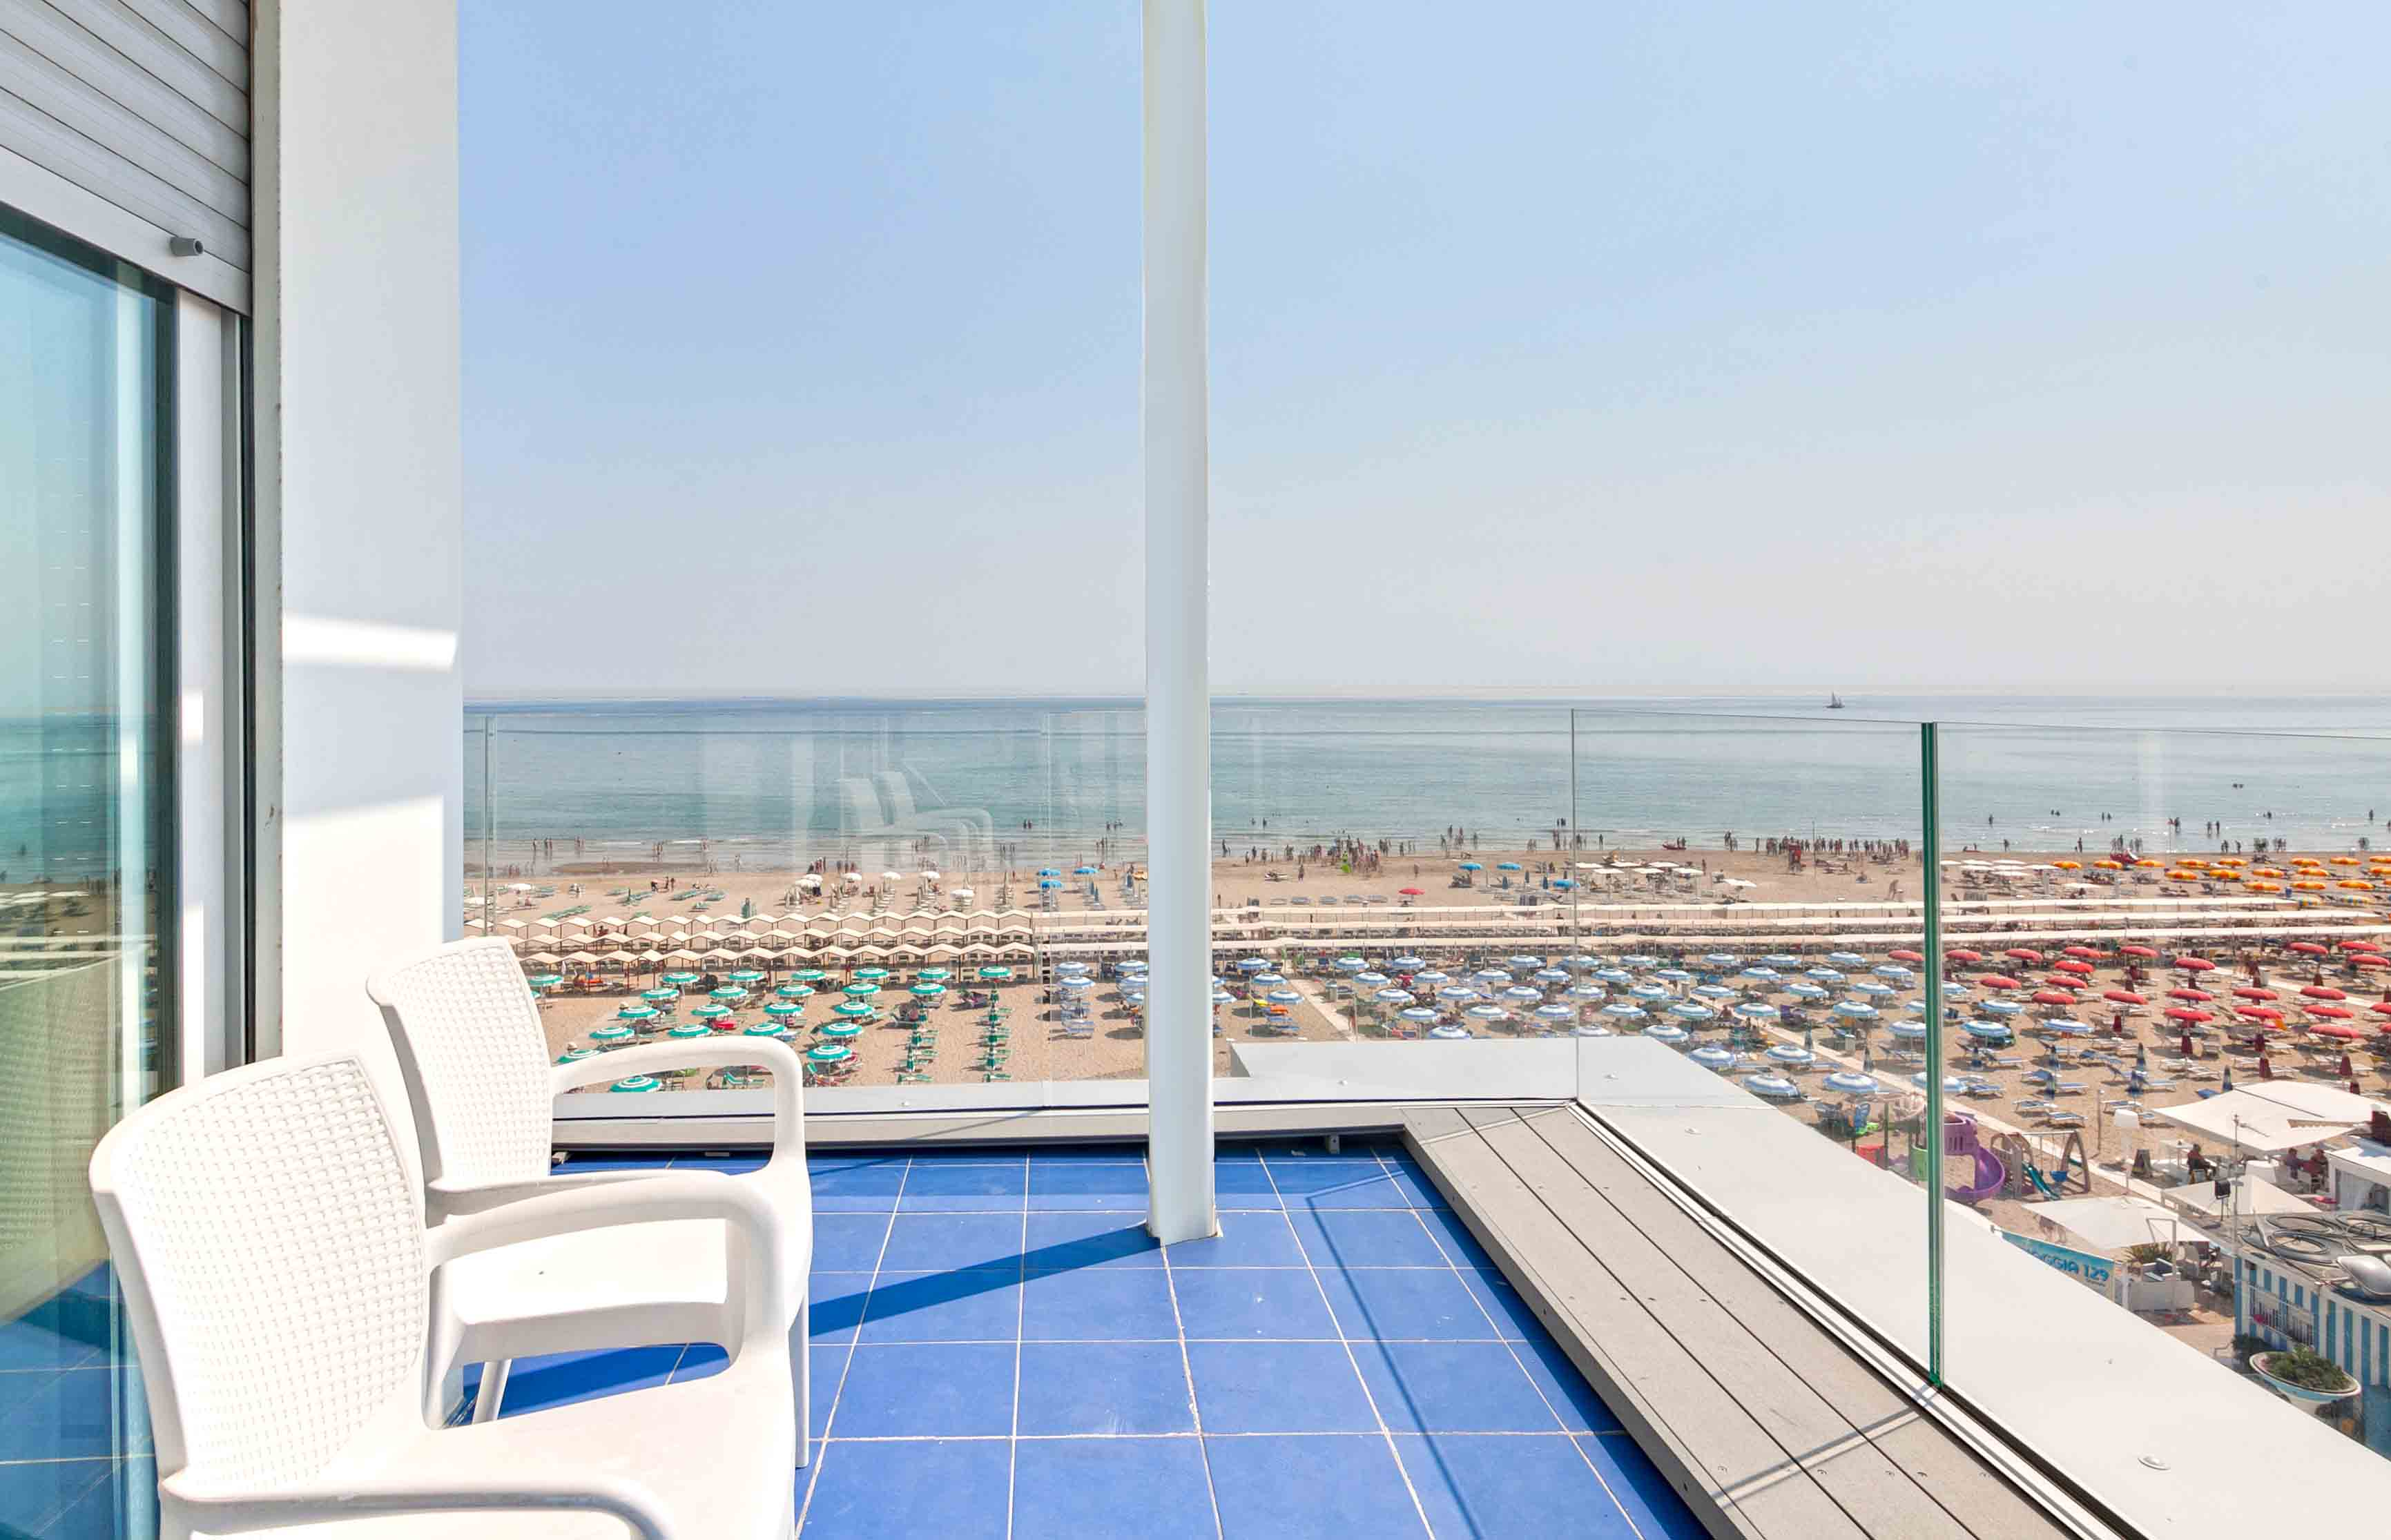 panoramica-camera-quarto-piano-riccione